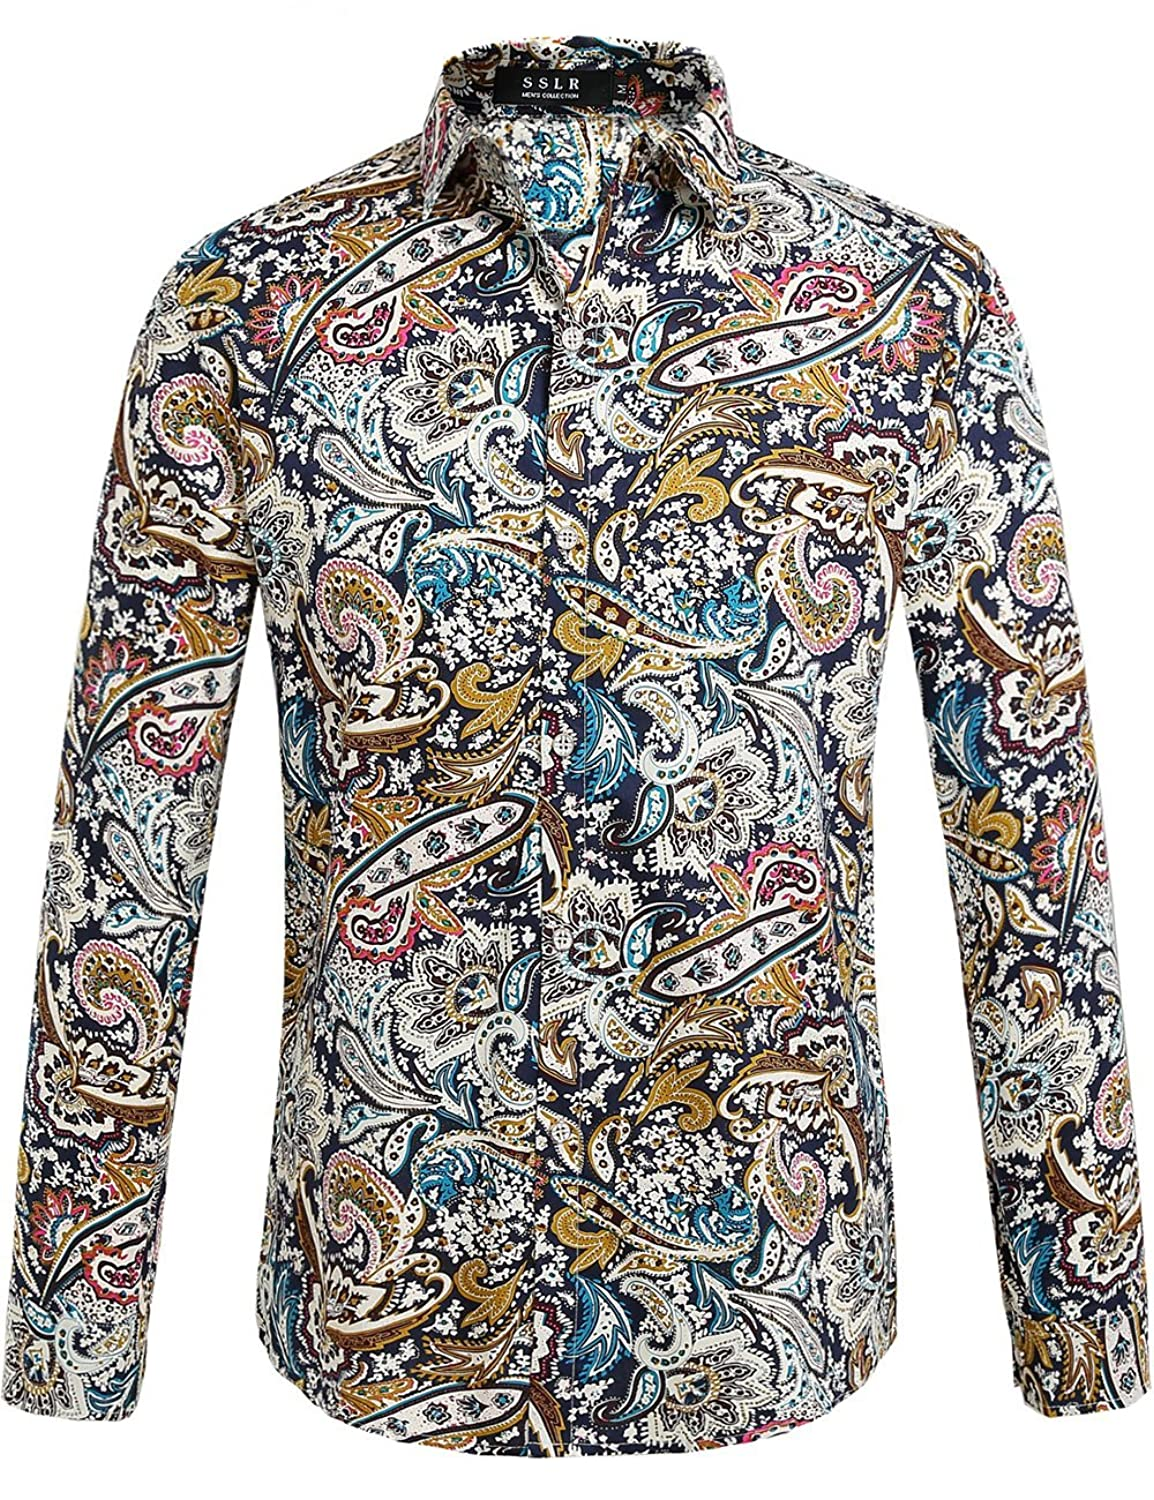 c69a133b 1960s – 70s Mens Shirts- Disco Shirts, Hippie Shirts SSLR Mens Paisley  Cotton Long